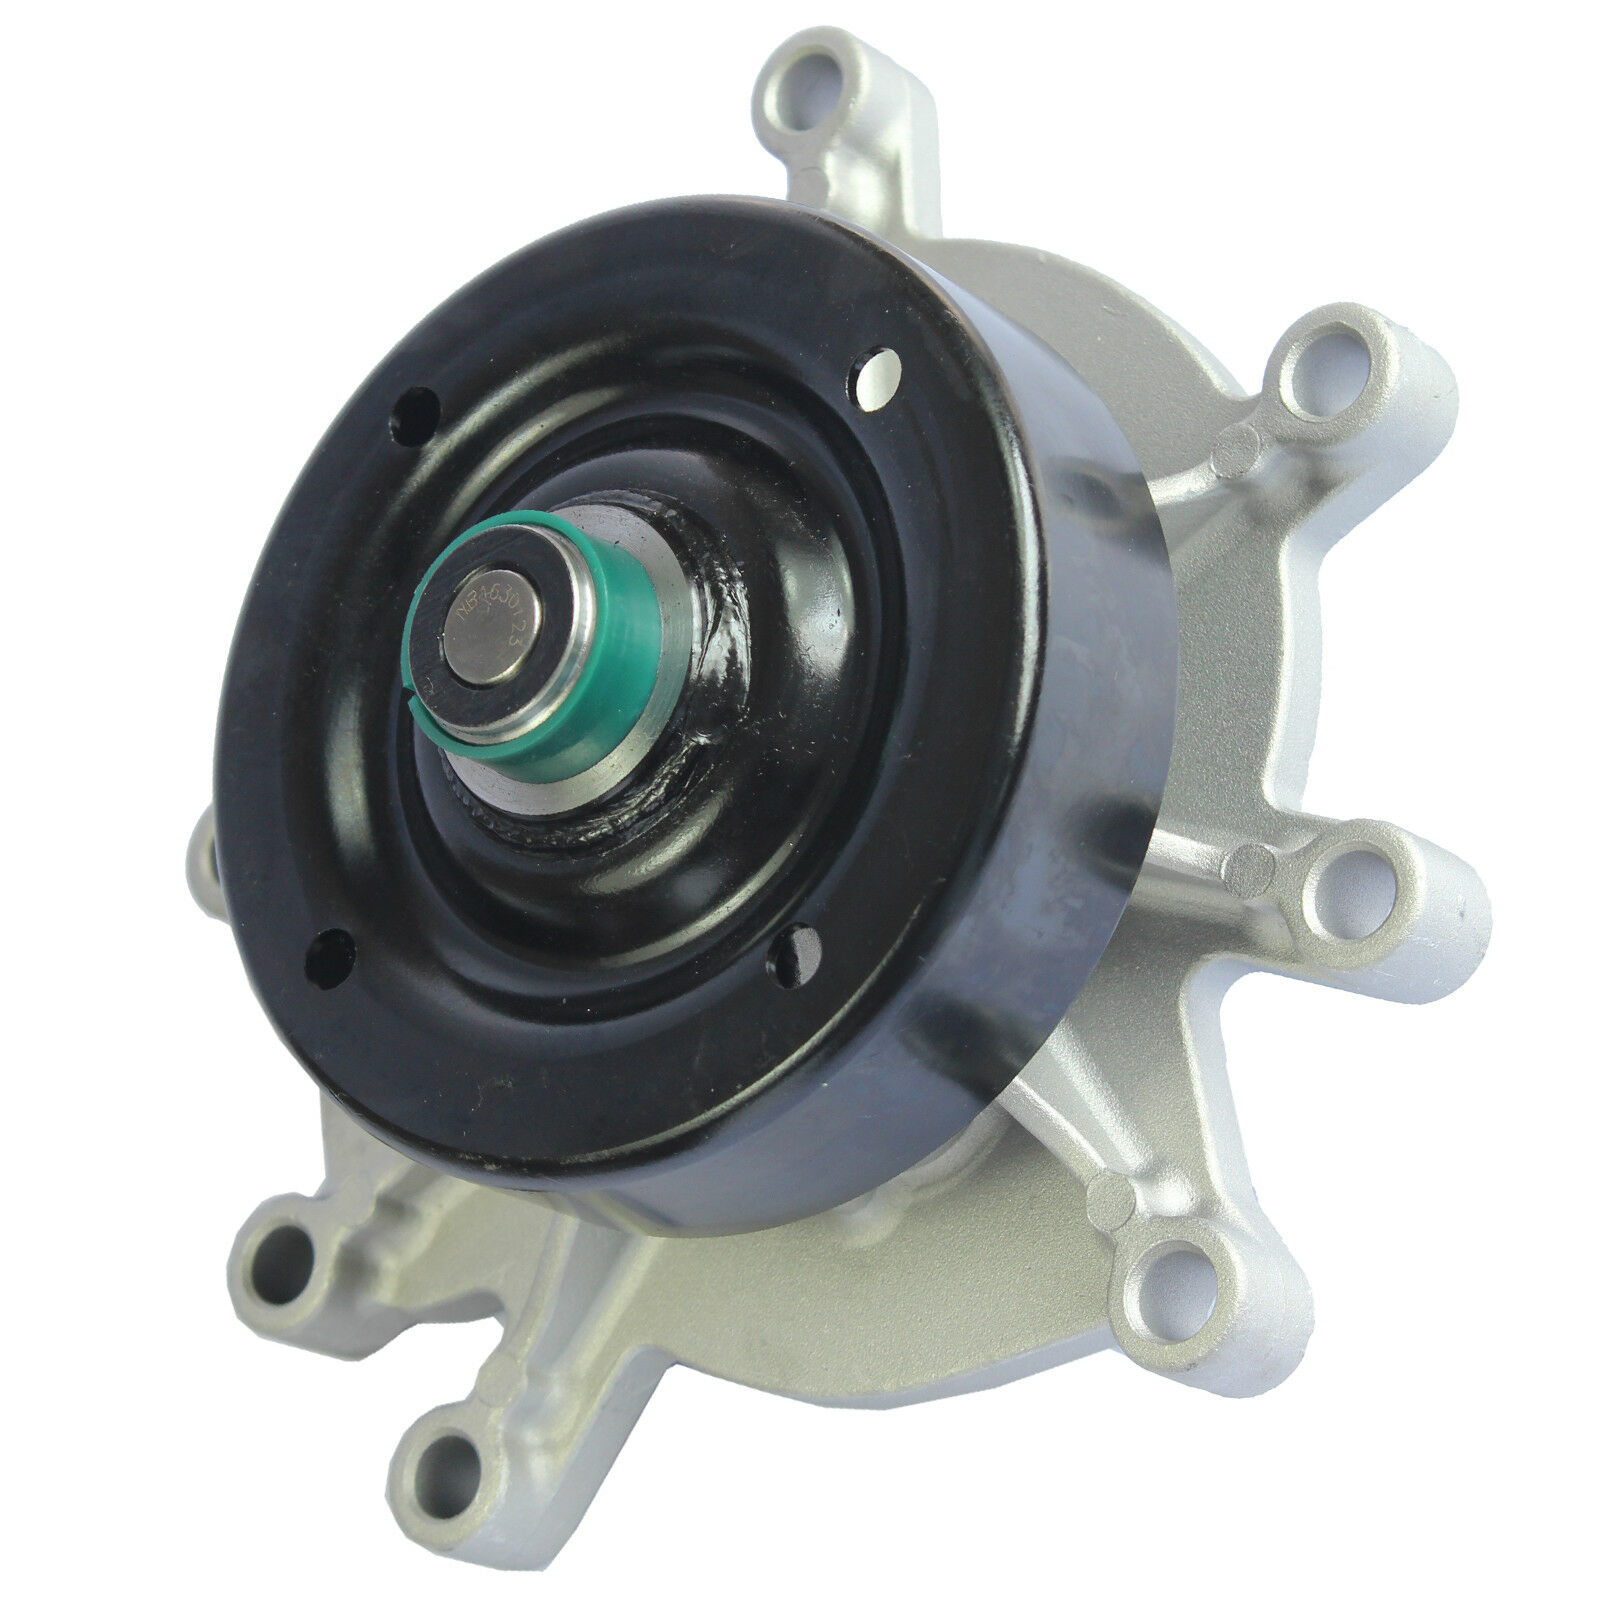 OAW CR4350 Engine Water Pump for Chrysler Dodge Jeep Mitsubishi 3.7L 4.7L 1999-2012